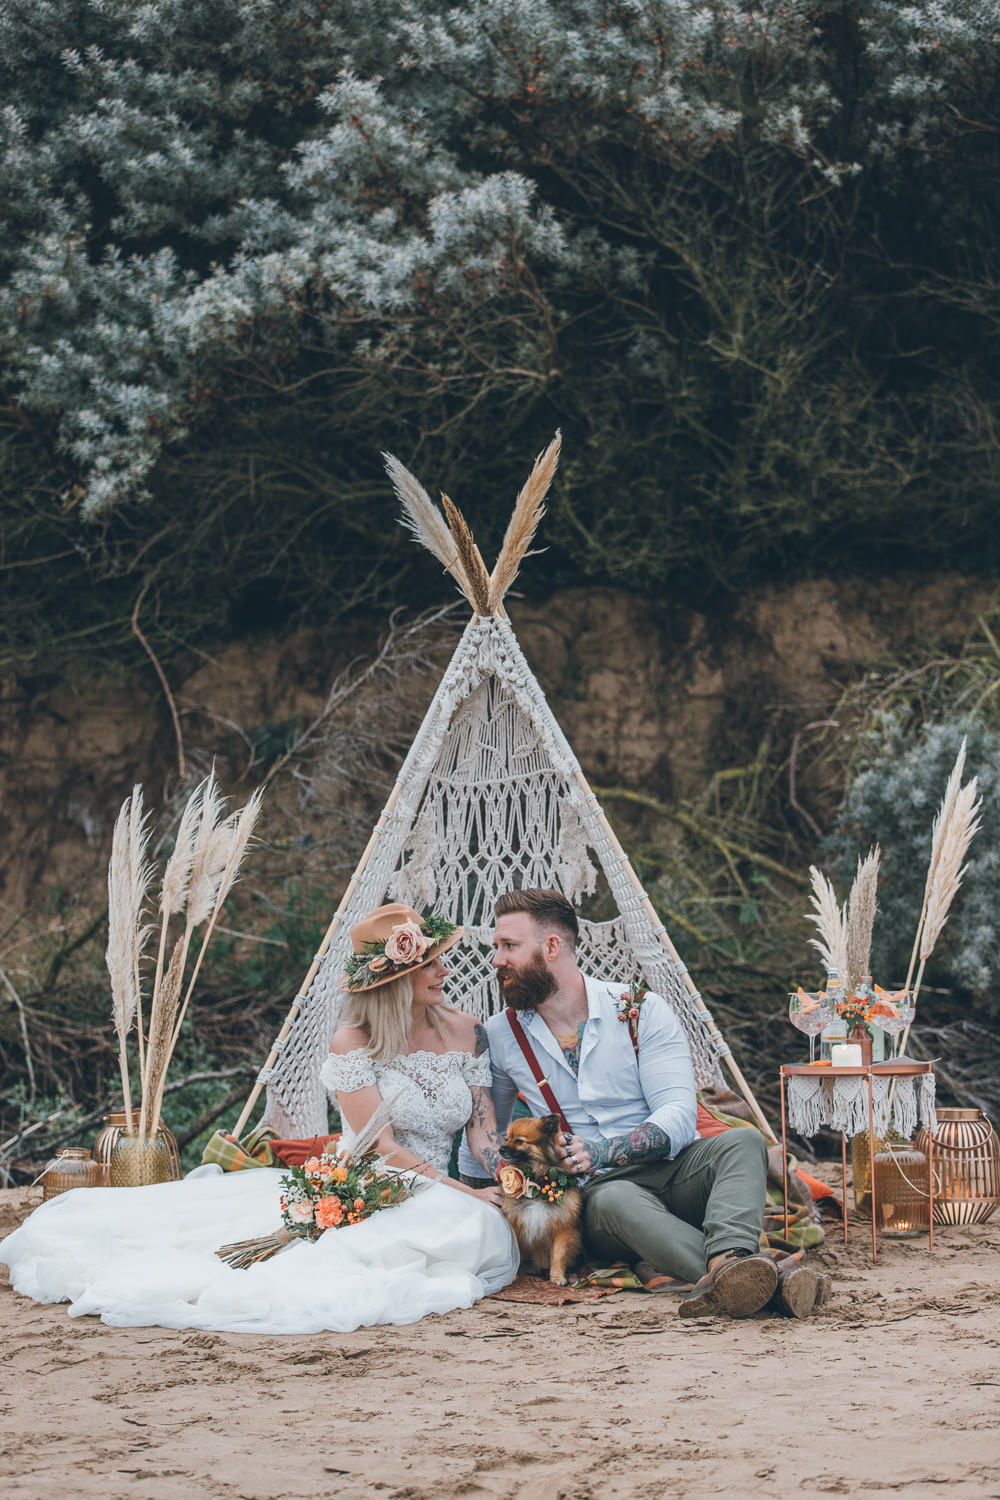 Beach Wedding UK Maria Madison Photographer Tipi Seating Area Boho